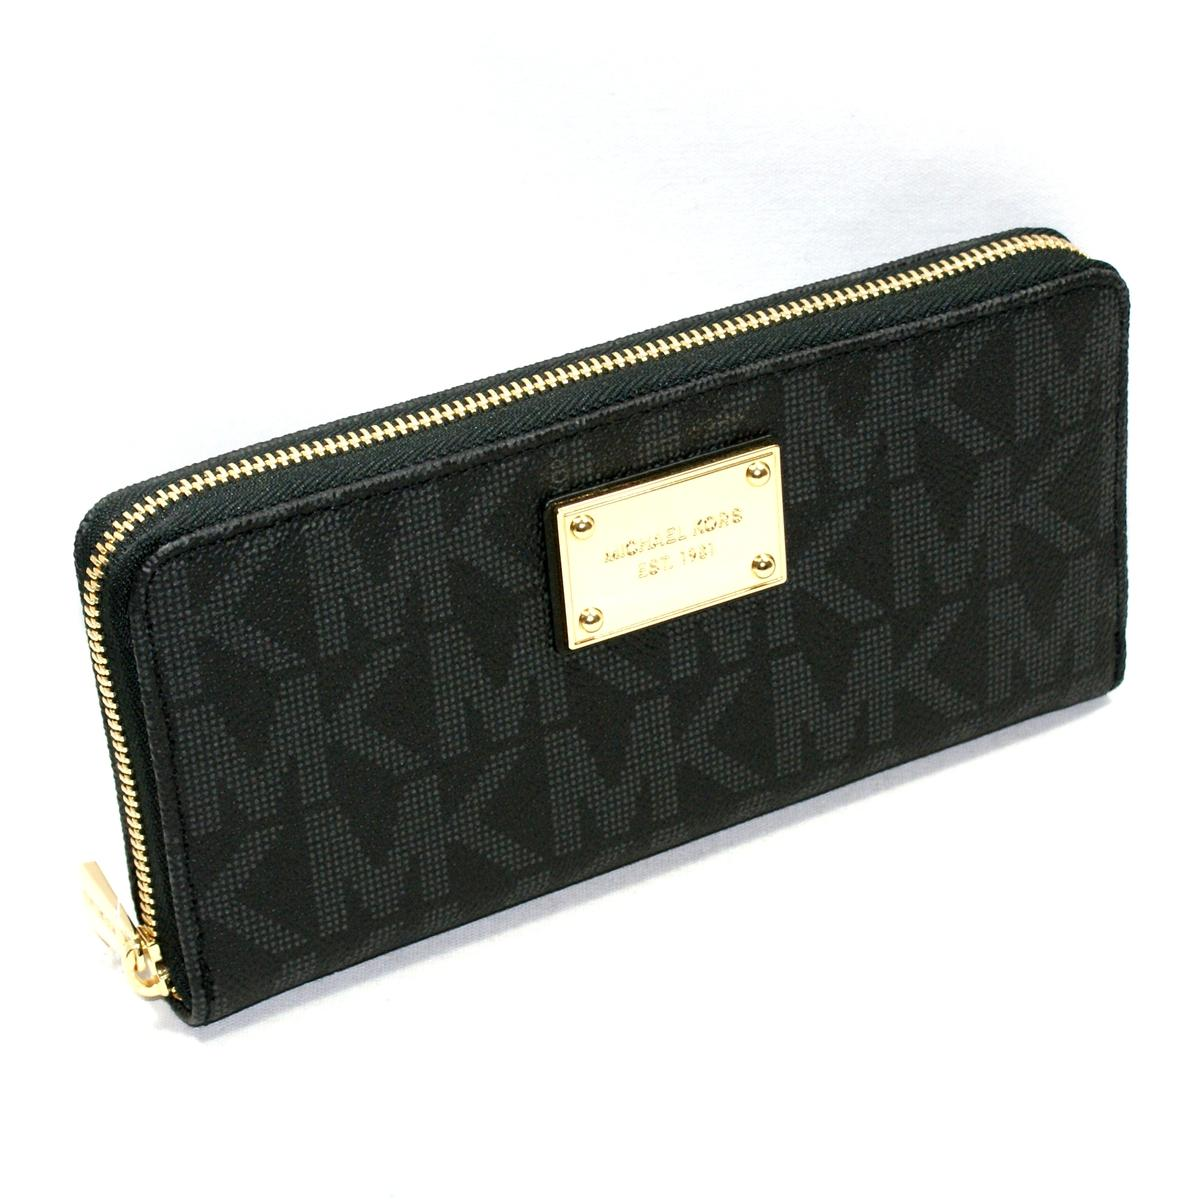 15f4536a9d Home · Michael Kors · Jet Set MK Signature PVC Continental Wallet/ Clutch  Black. CLICK THUMBNAIL TO ZOOM. Found ...